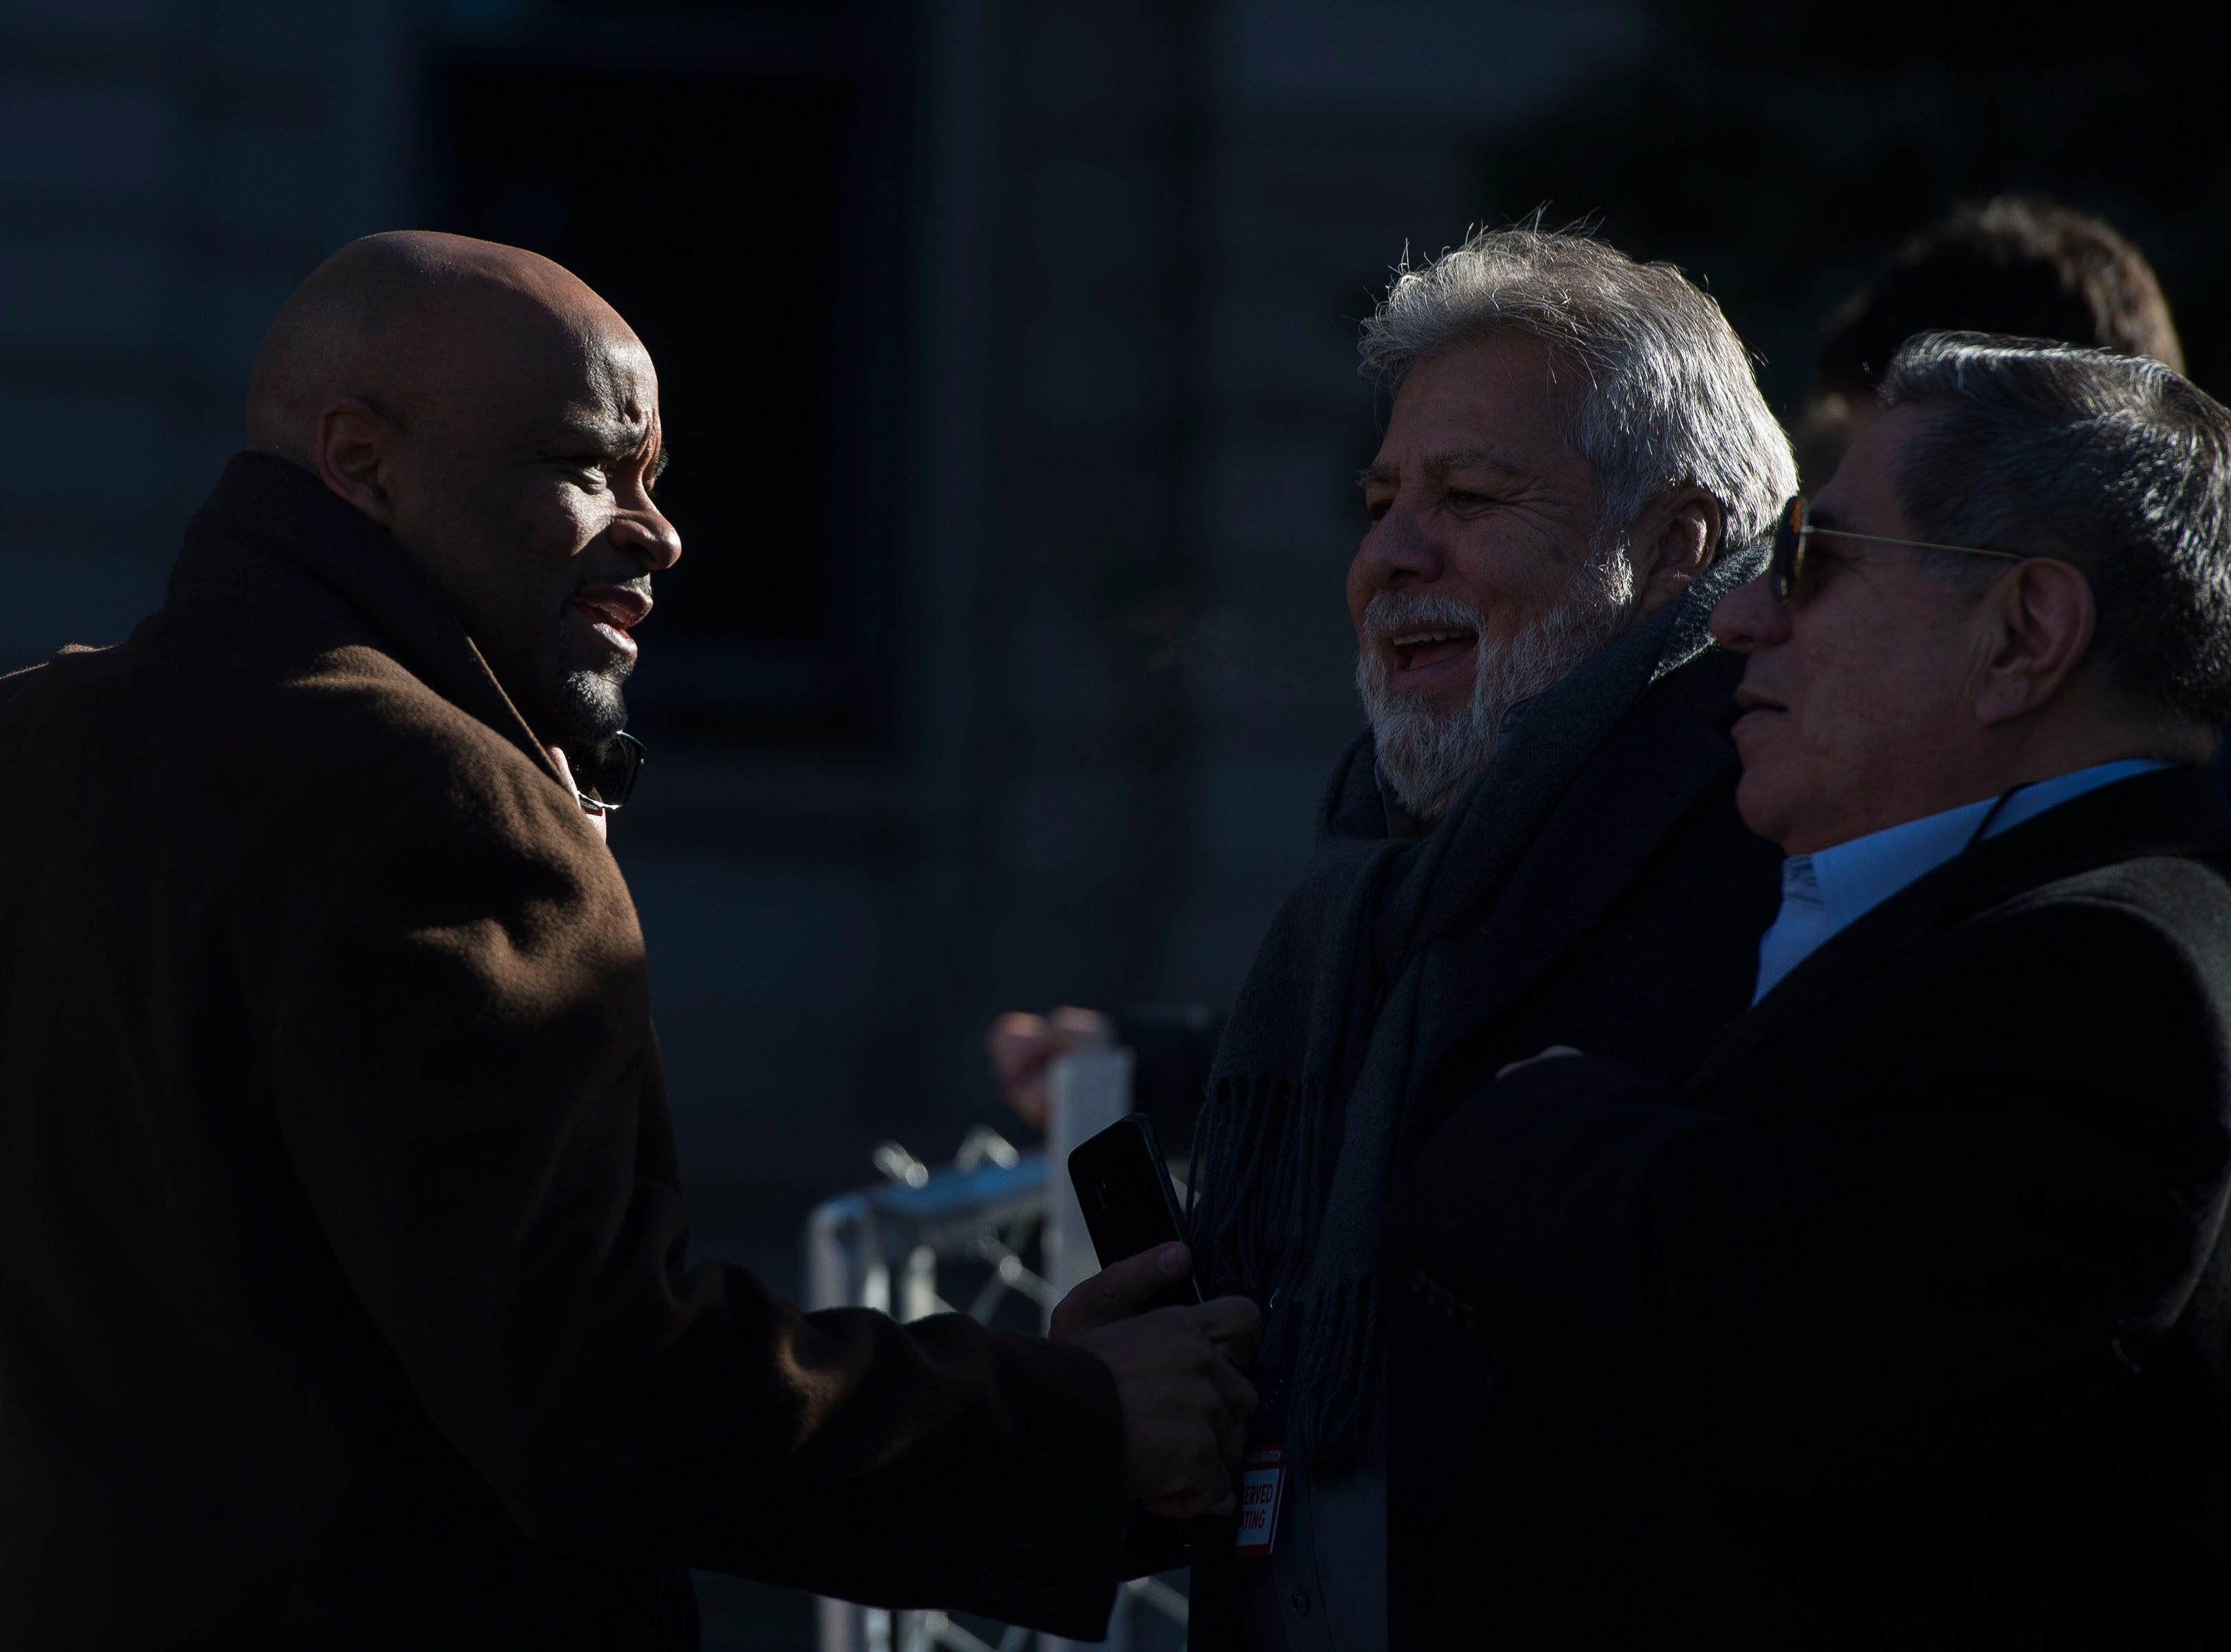 Denver mayor Michael Hancock greets audience members before the inauguration of Colorado State Governor Jared Polis on Tuesday, Jan. 8, 2019, in front of the Colorado State Capital building in Denver, Colo.